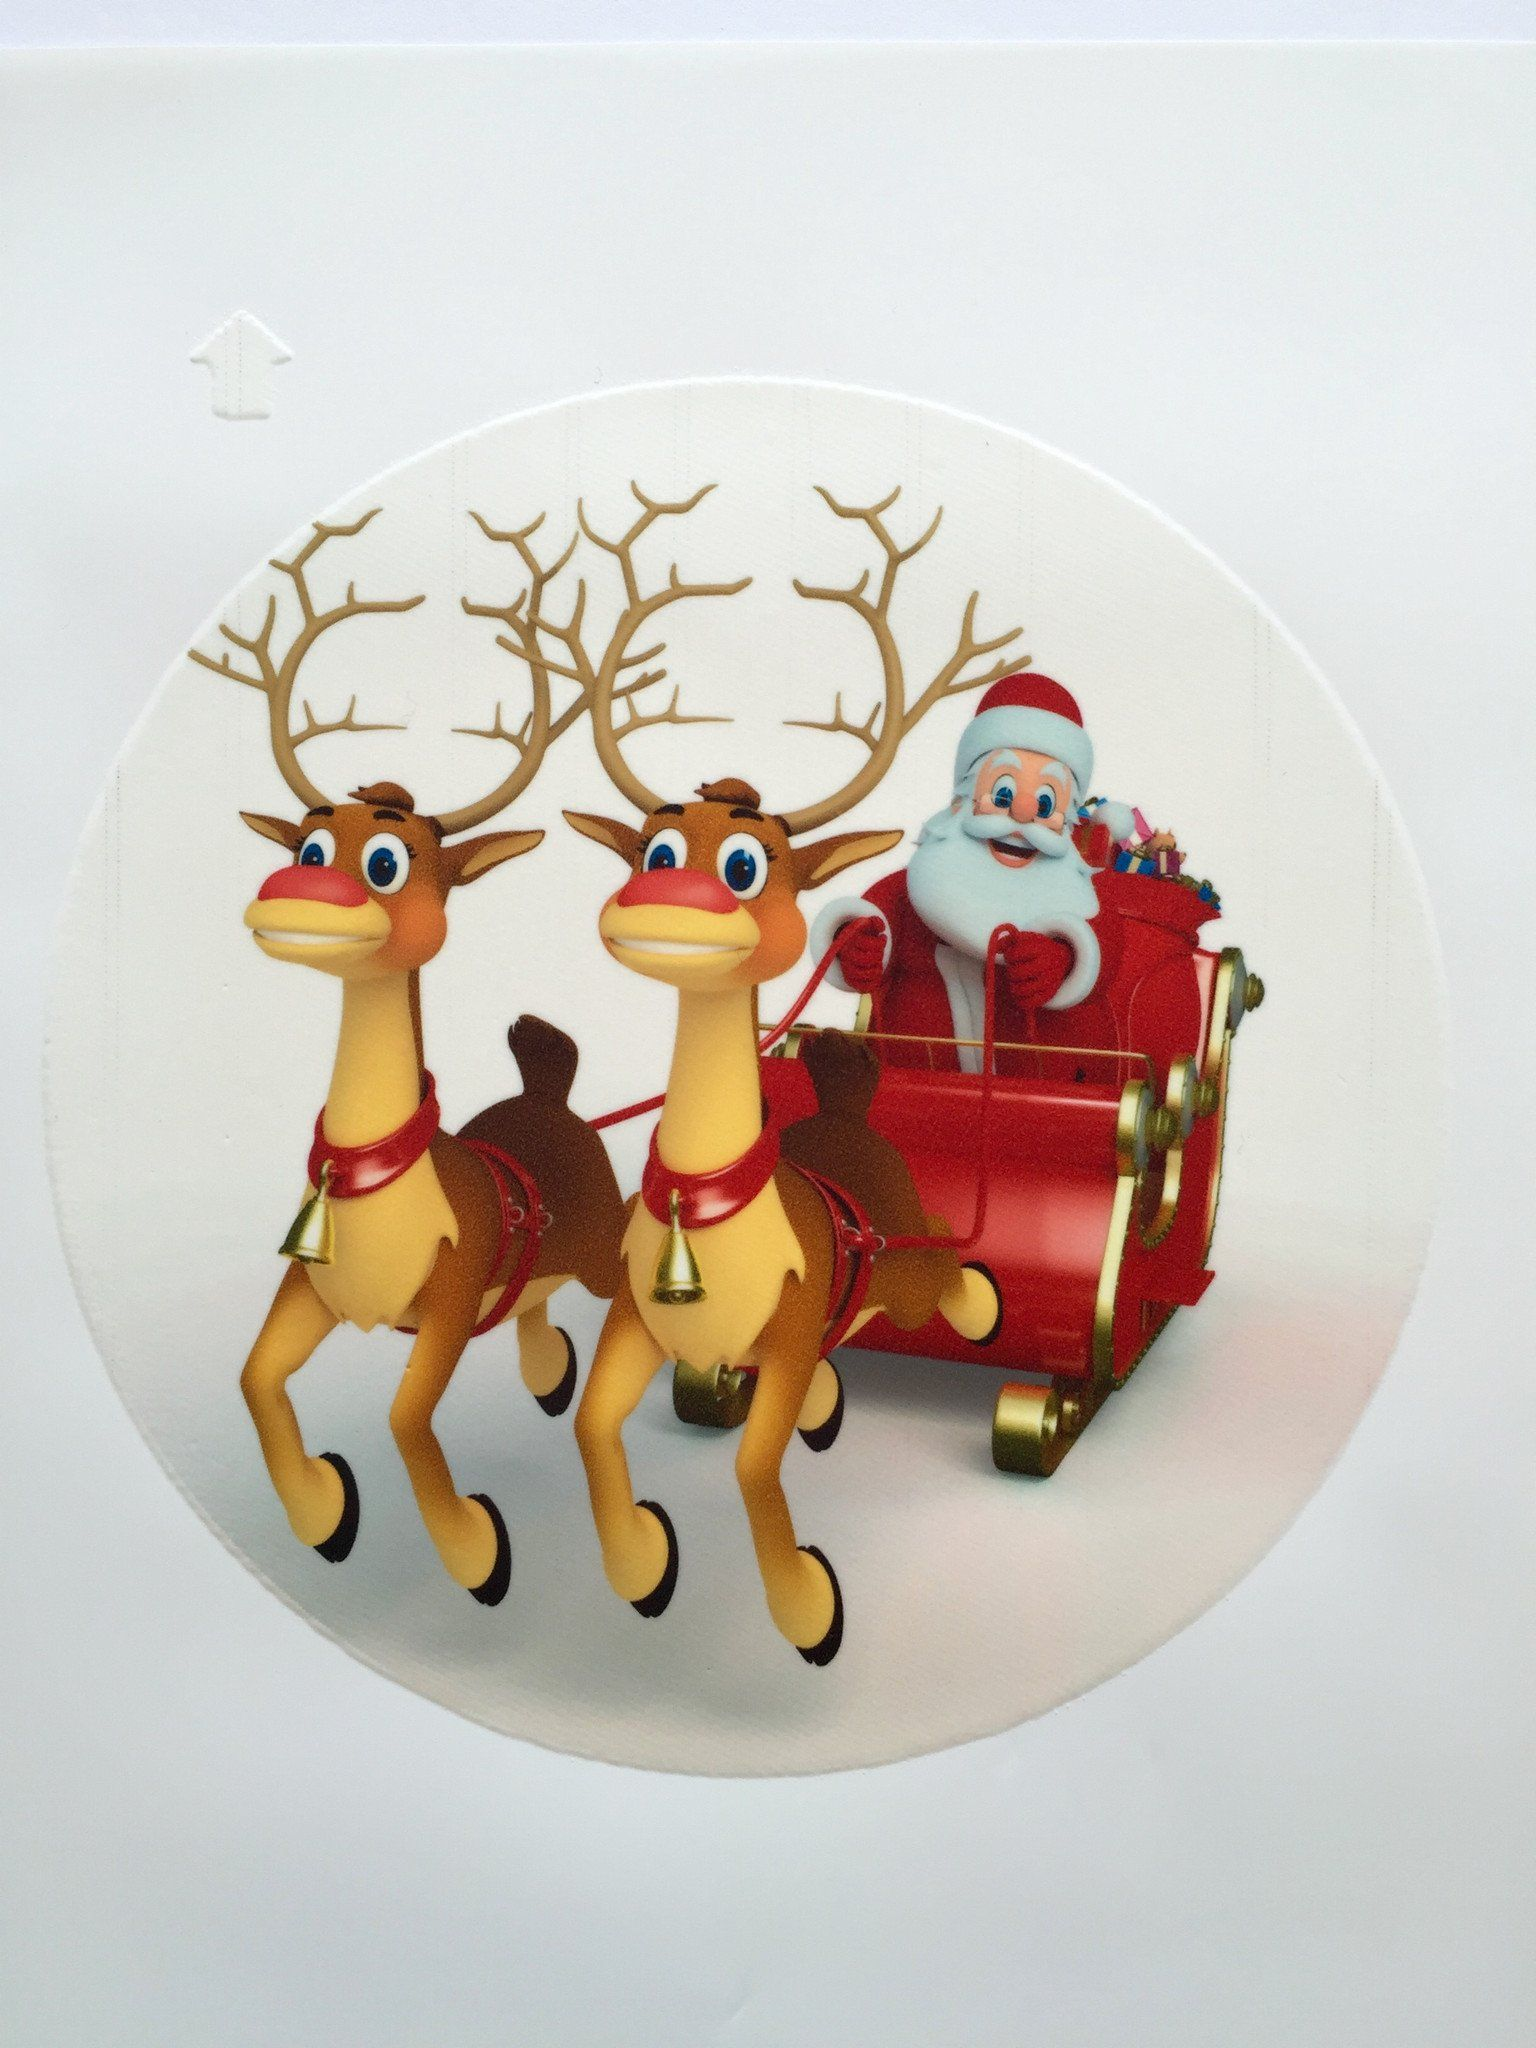 Edible cake toppers decoration - Christmas Reindeer cake top